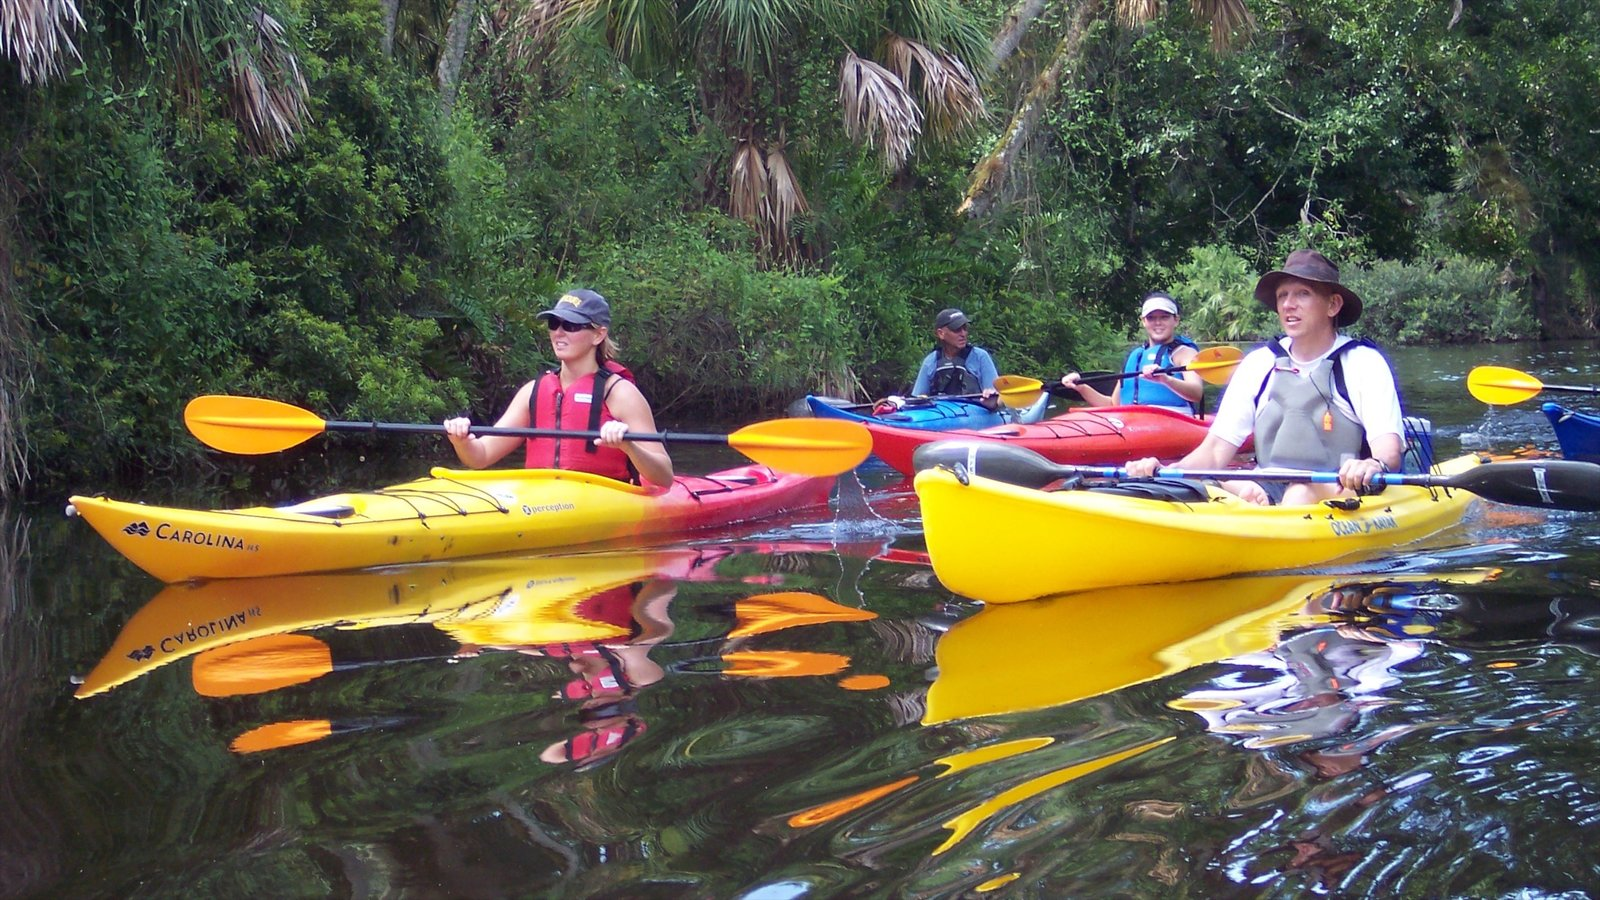 Vero Beach showing a river or creek, forest scenes and kayaking or canoeing